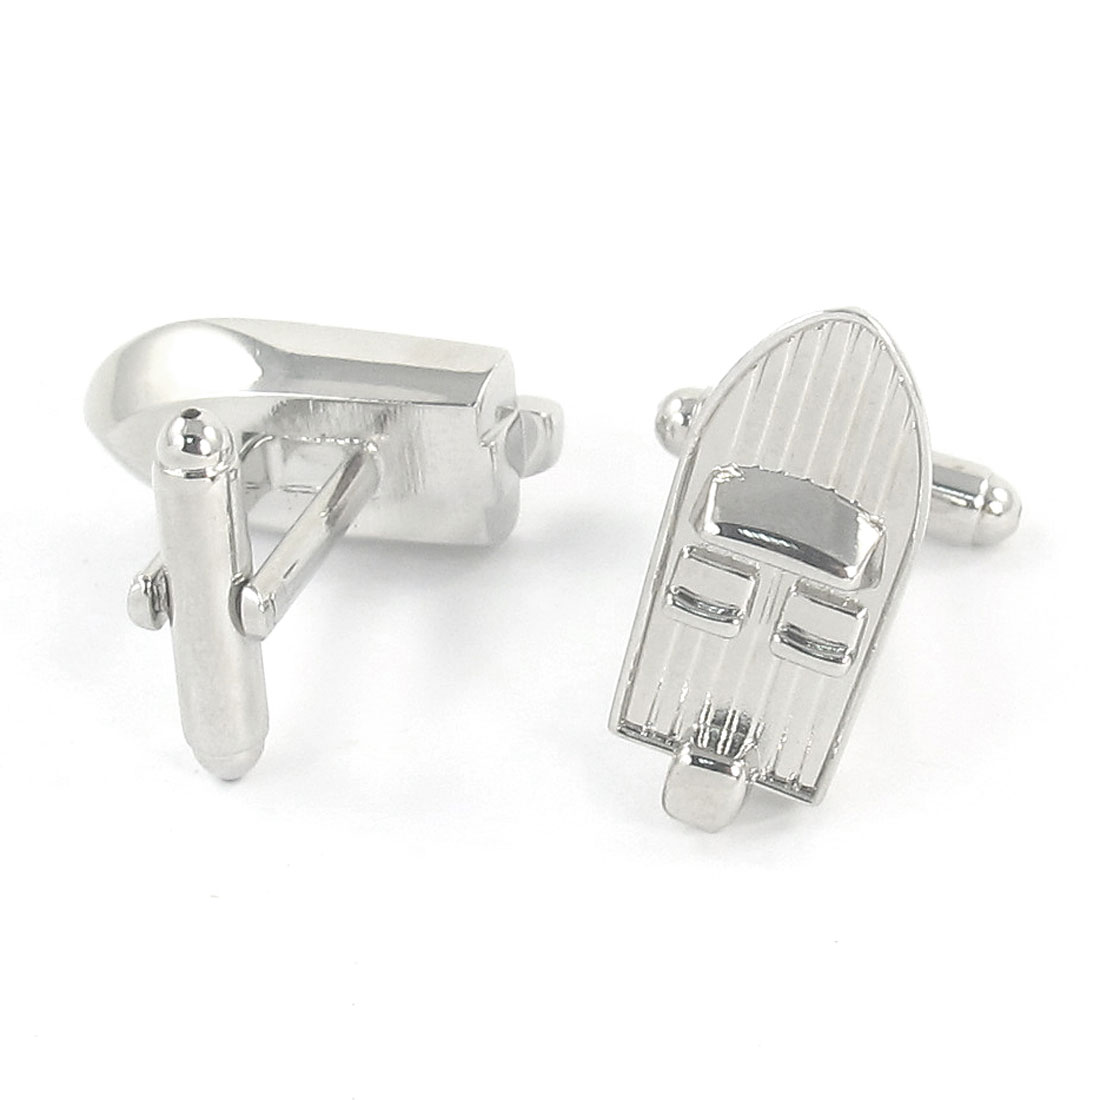 Silver Tone Metal Speed Boat Design Cufflinks Cuff Links Pair